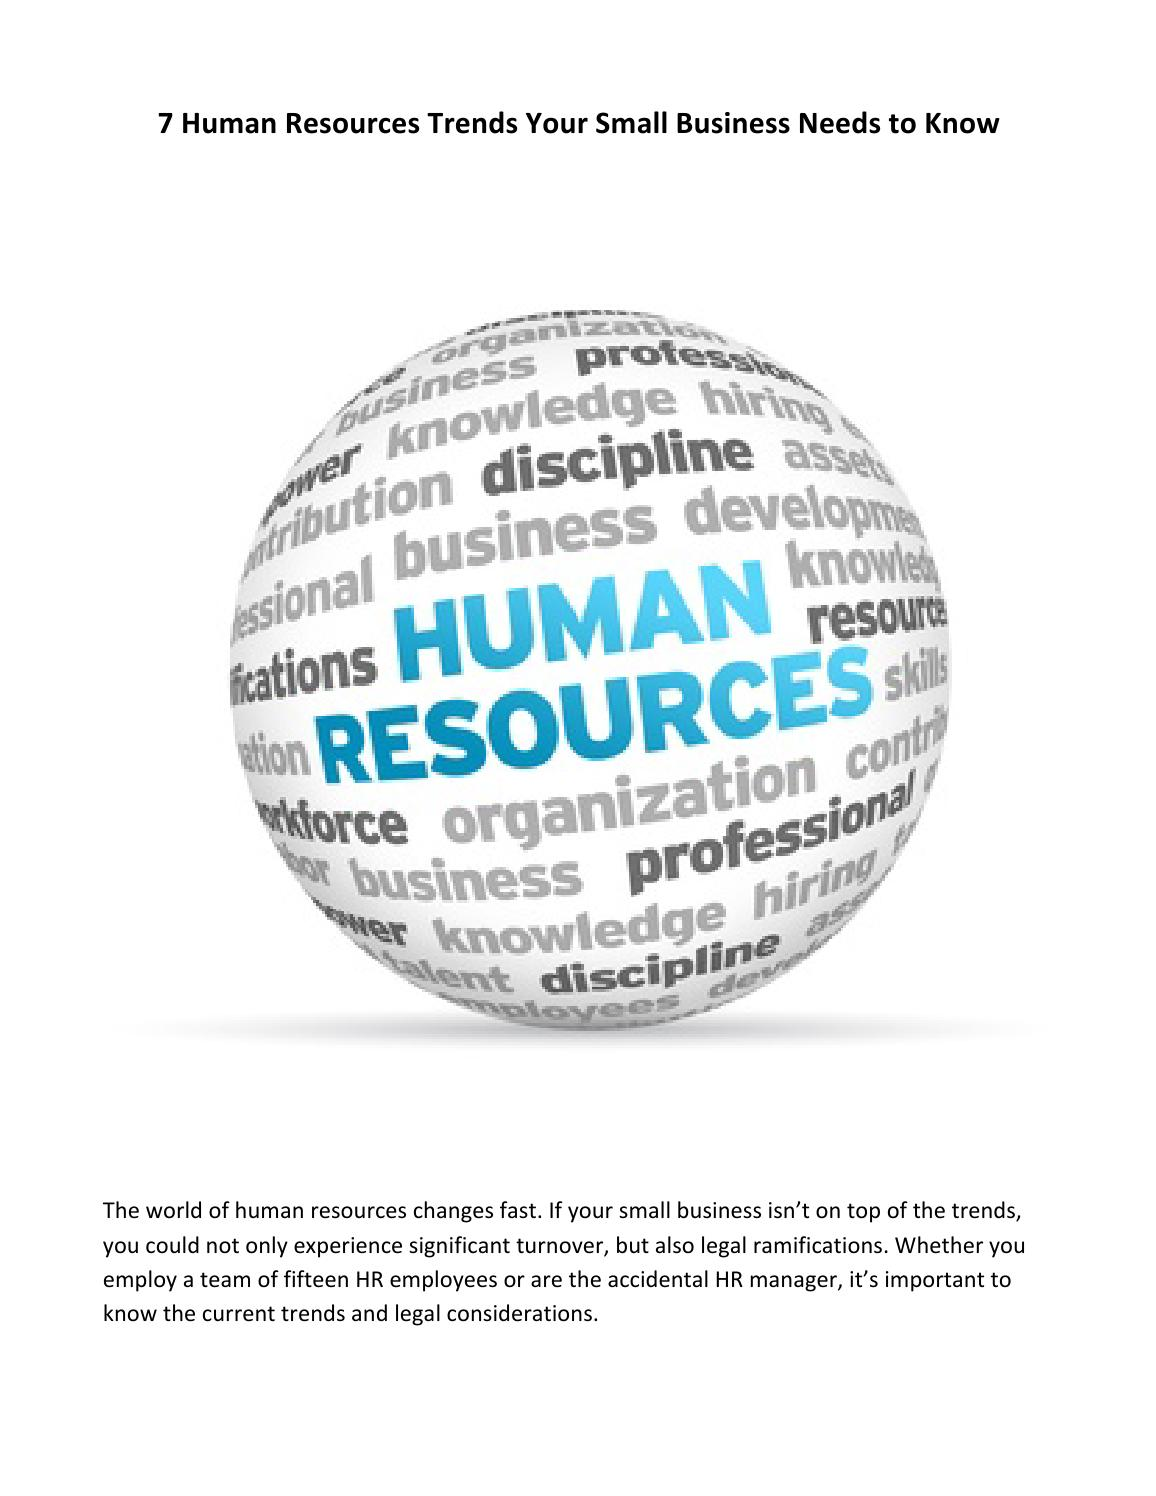 7 Human Resources Trends Your Small Business Needs to Know